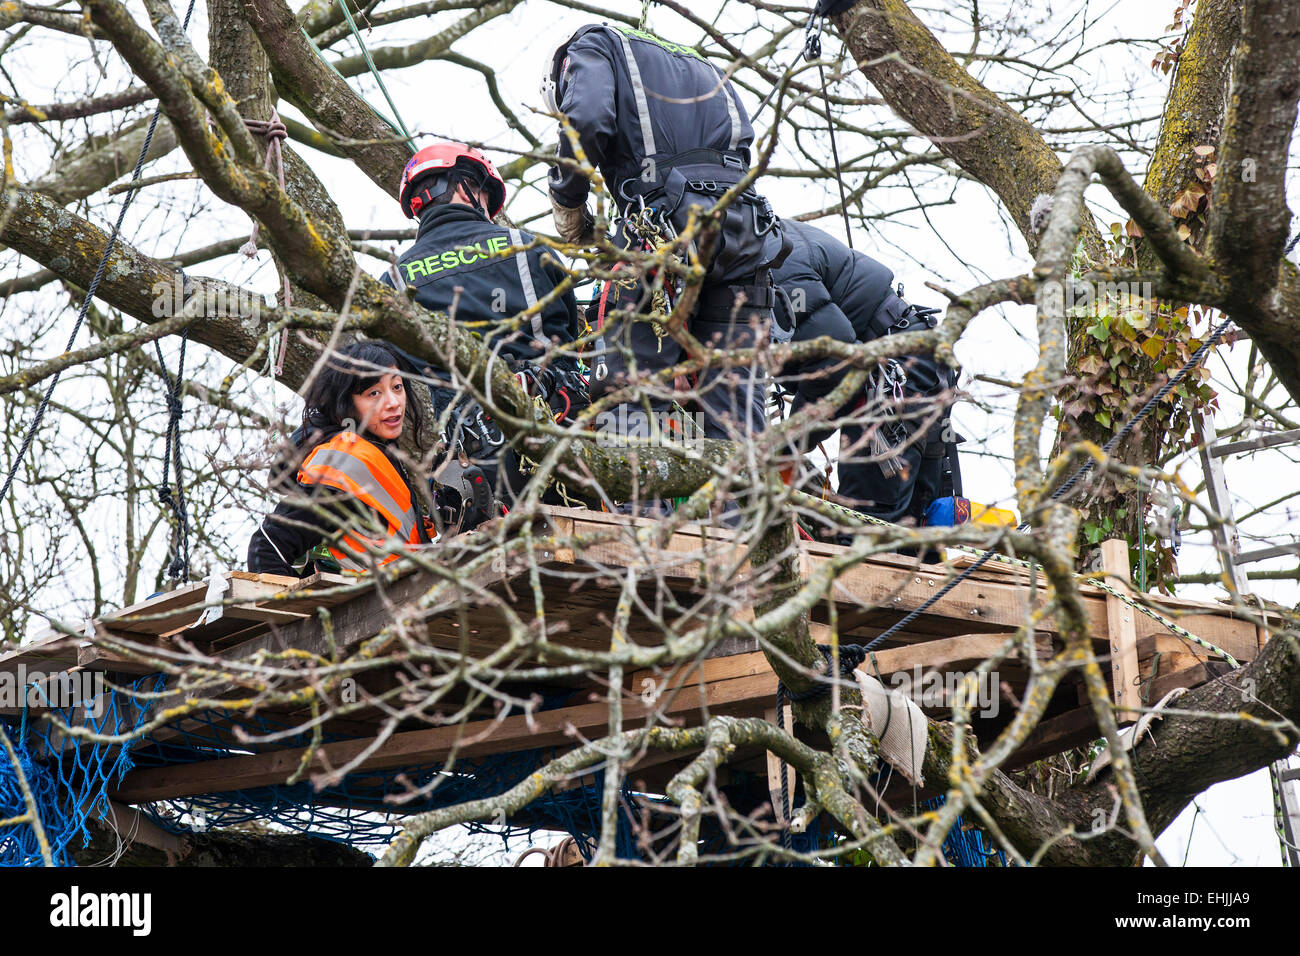 Bristol, UK. 14th Mar, 2015. A protester who is locked onto a treetop platform is unwillingly 'rescued' - Stock Image